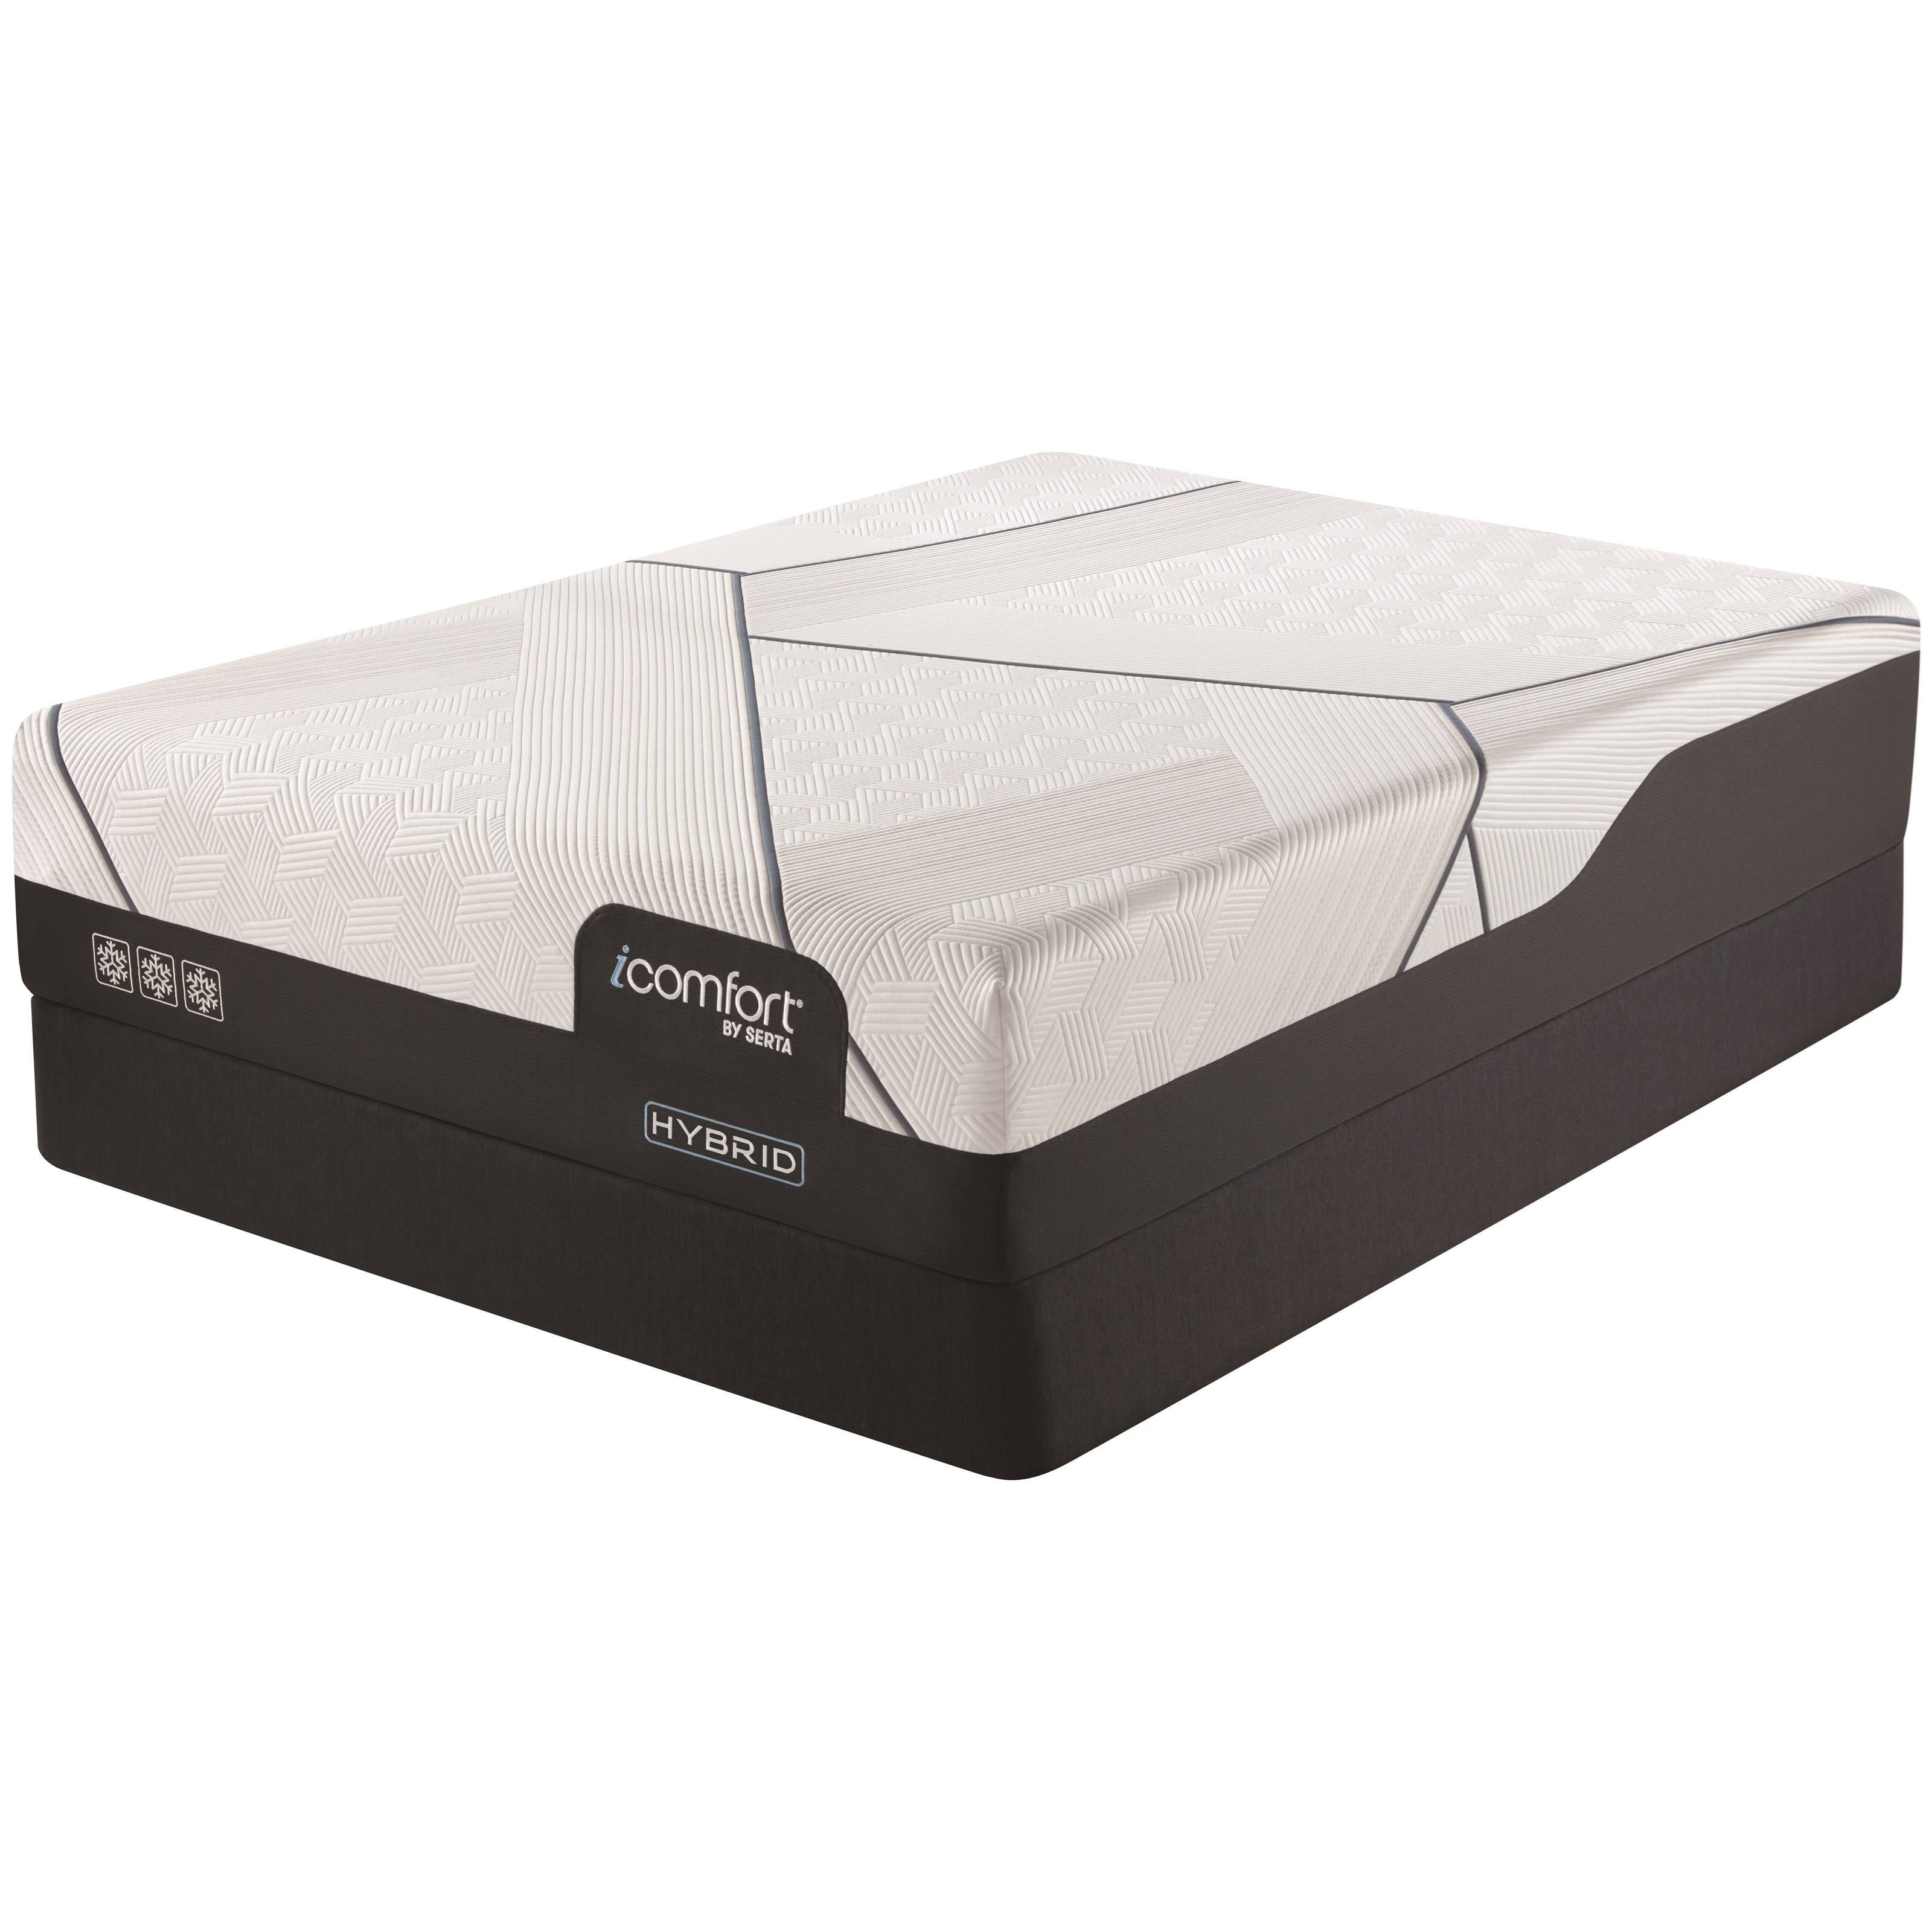 "CF4000 Hybrid Firm Queen 14"" Firm Hybrid Mattress Set by Serta at Goffena Furniture & Mattress Center"